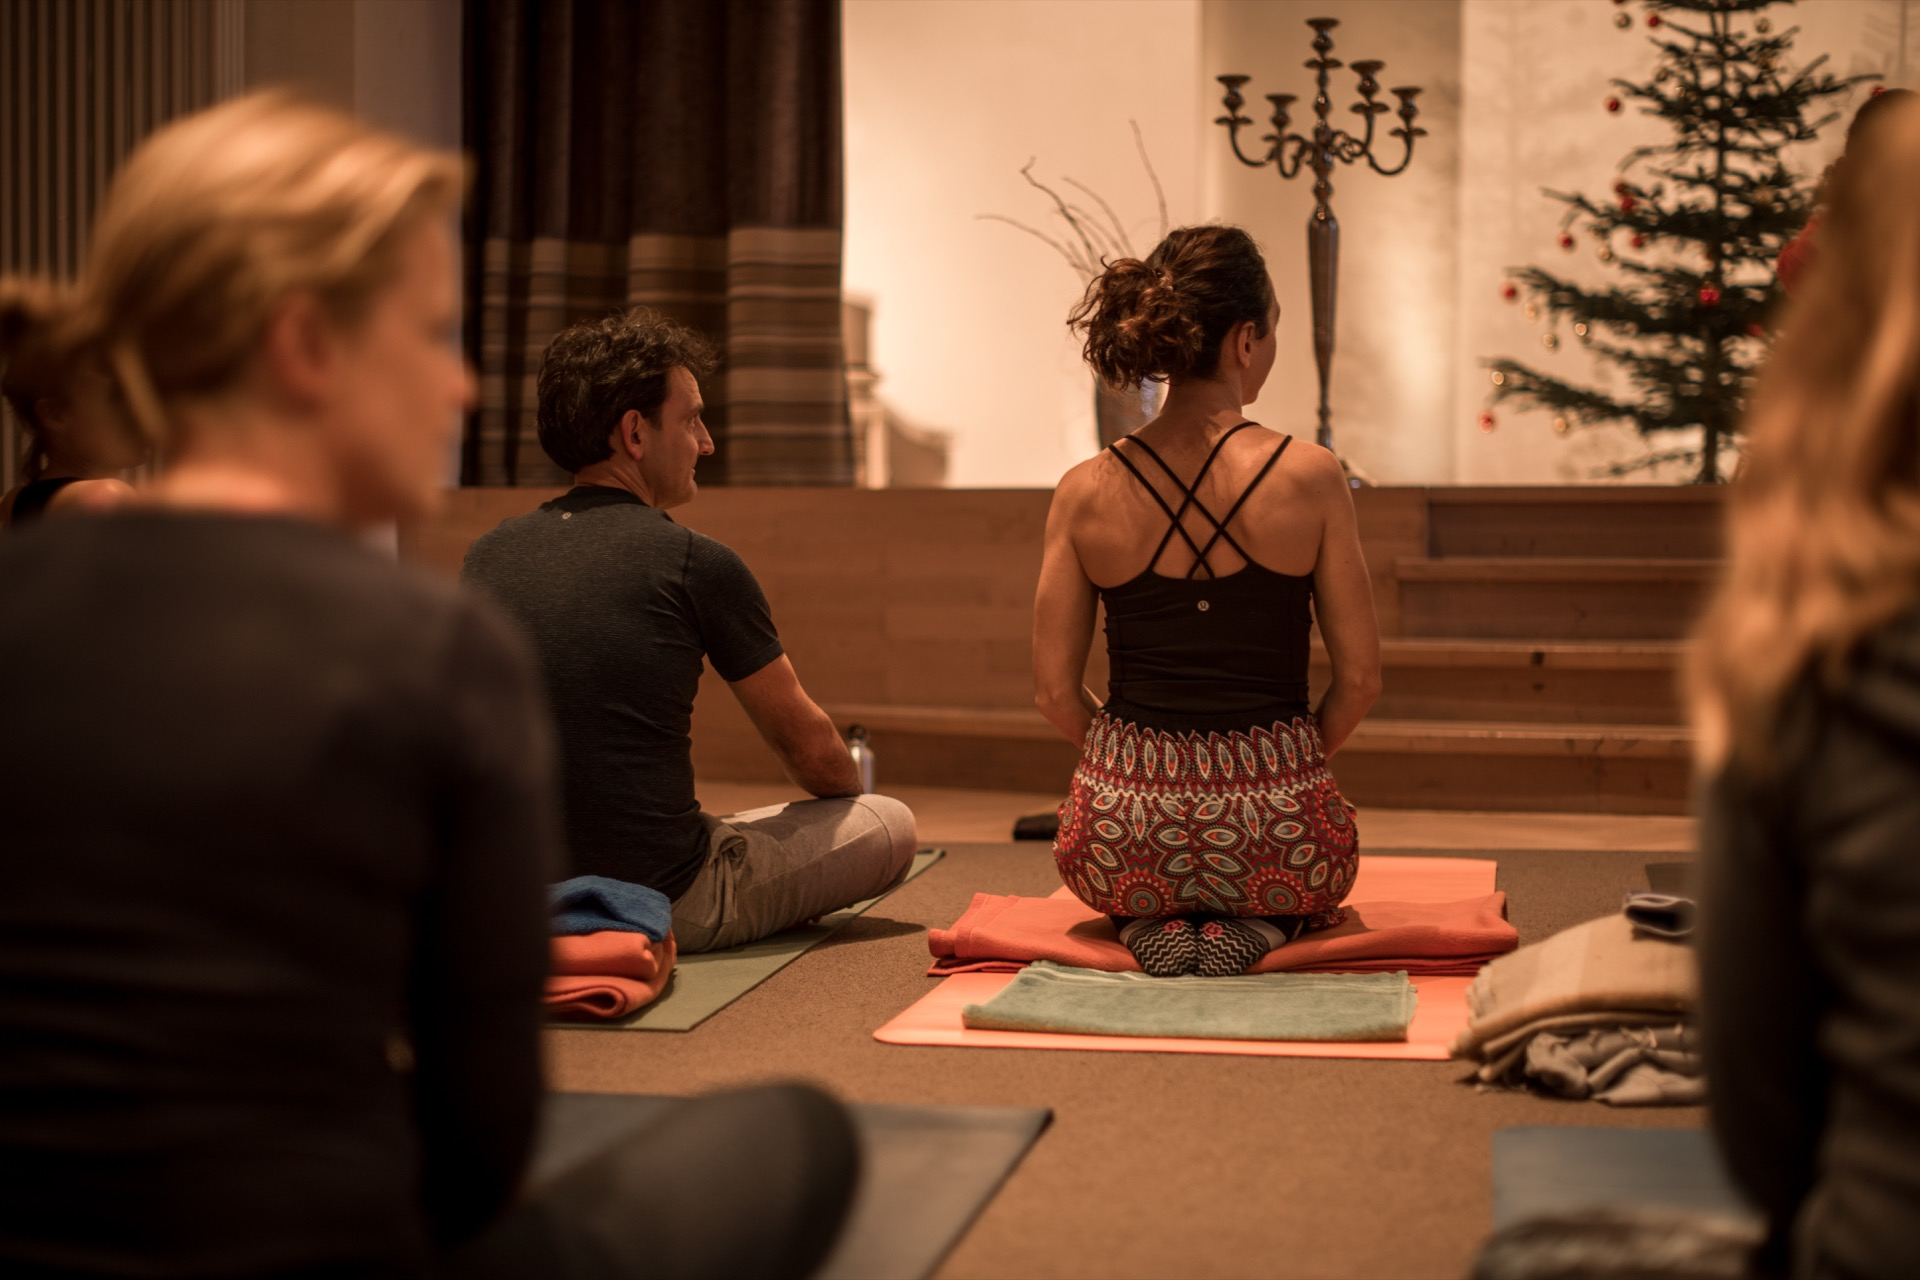 A-New-Beginning-Hie-Kim-Yoga-Retreat-Alina-Matis-Photography-047 - Hie Kim Yoga - Yoga Retreat - Yoga Workshops und Reisen